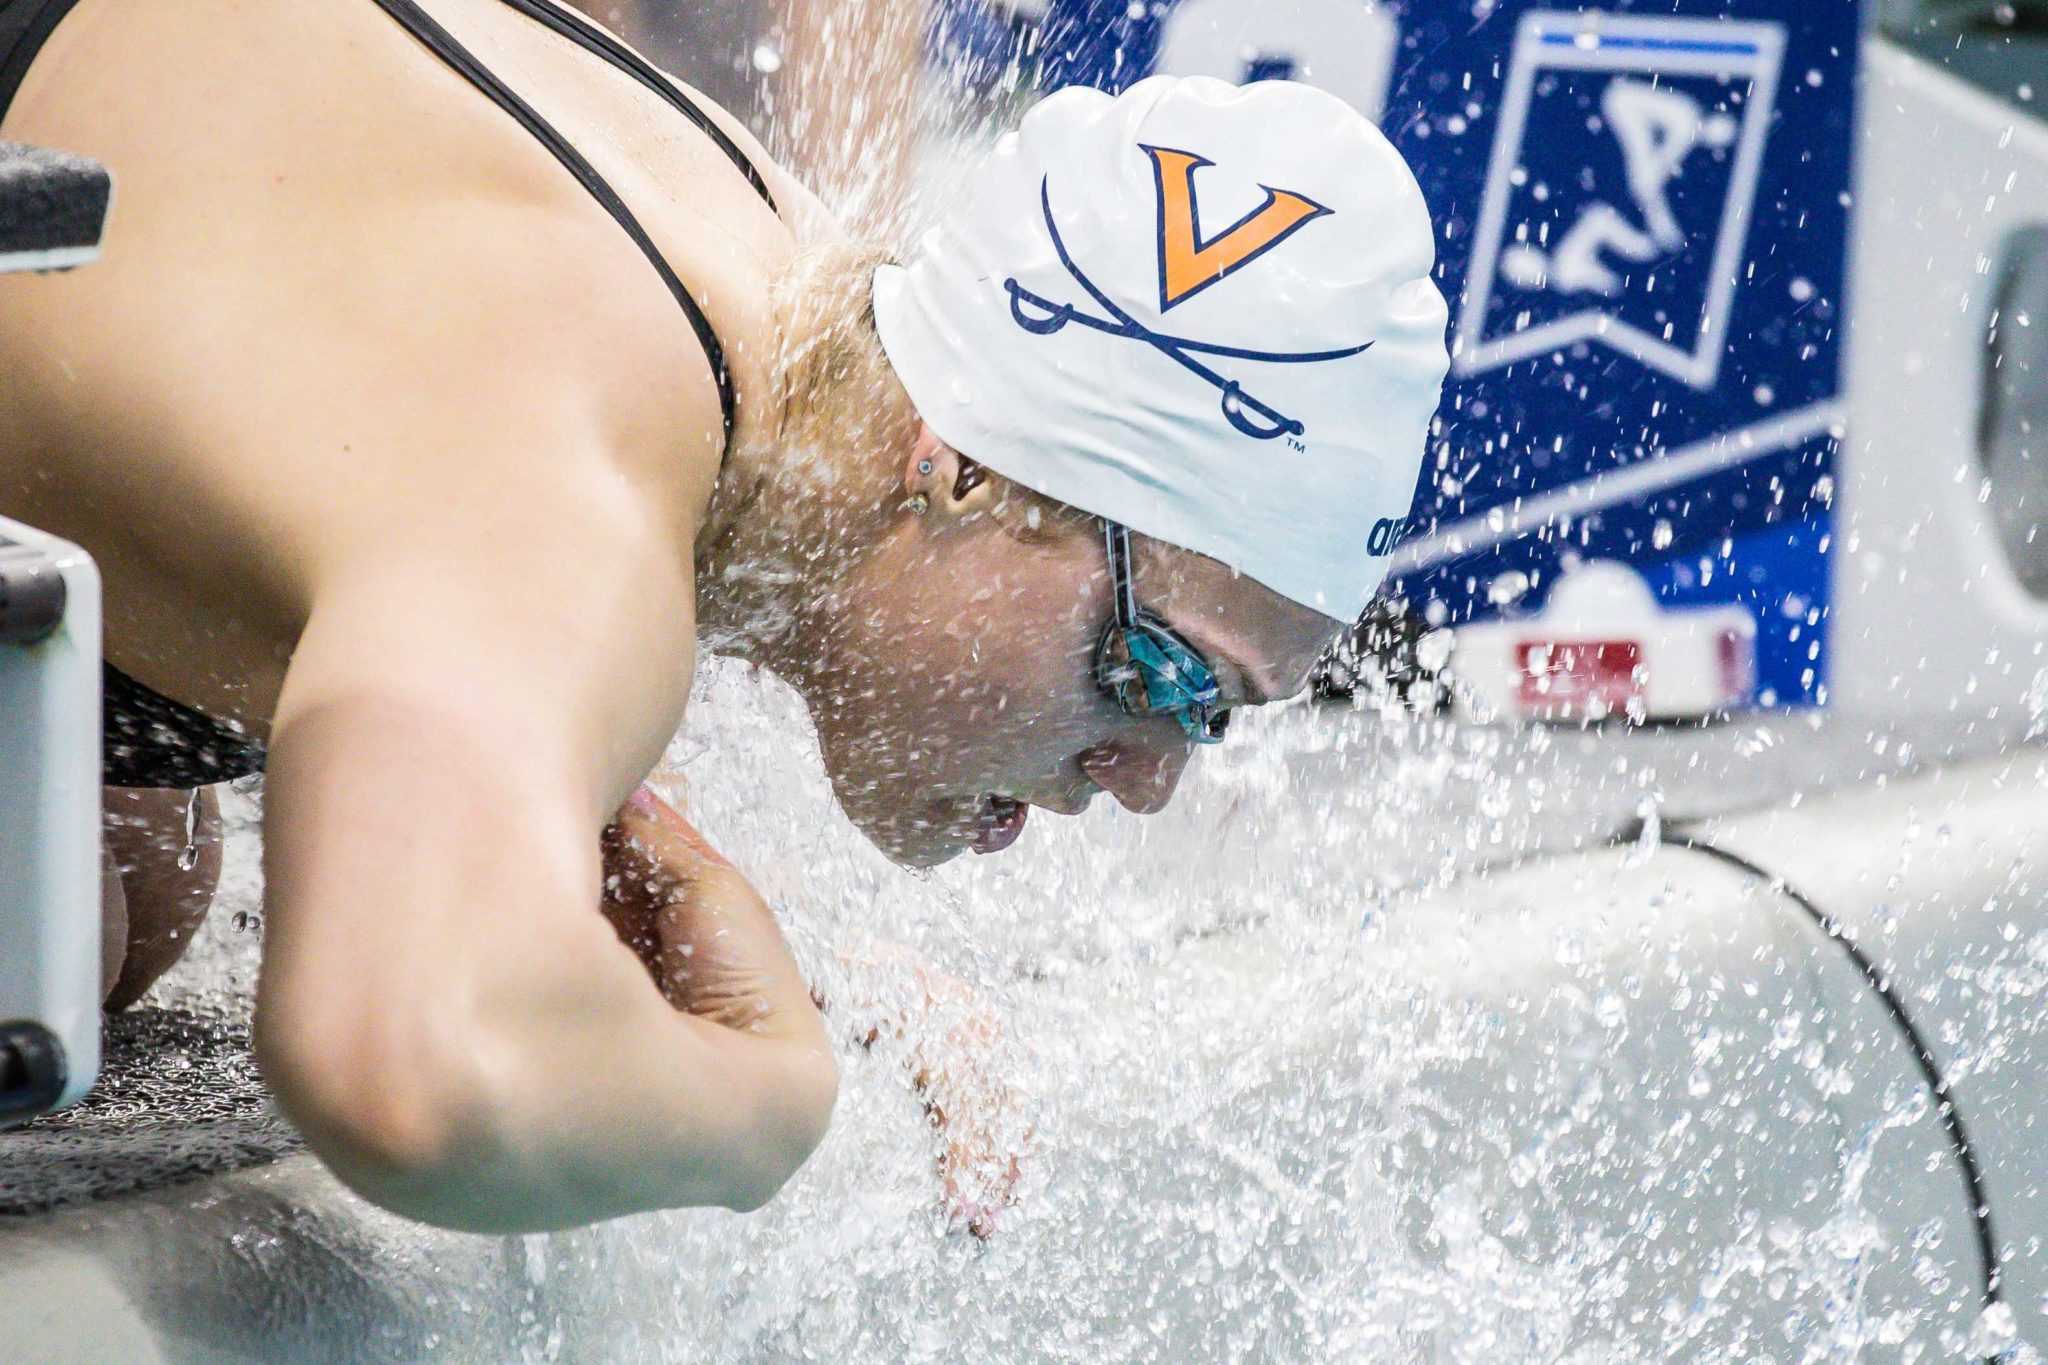 Practice + Pancakes: Virginia Swims Broken 100/200's Off the Blocks